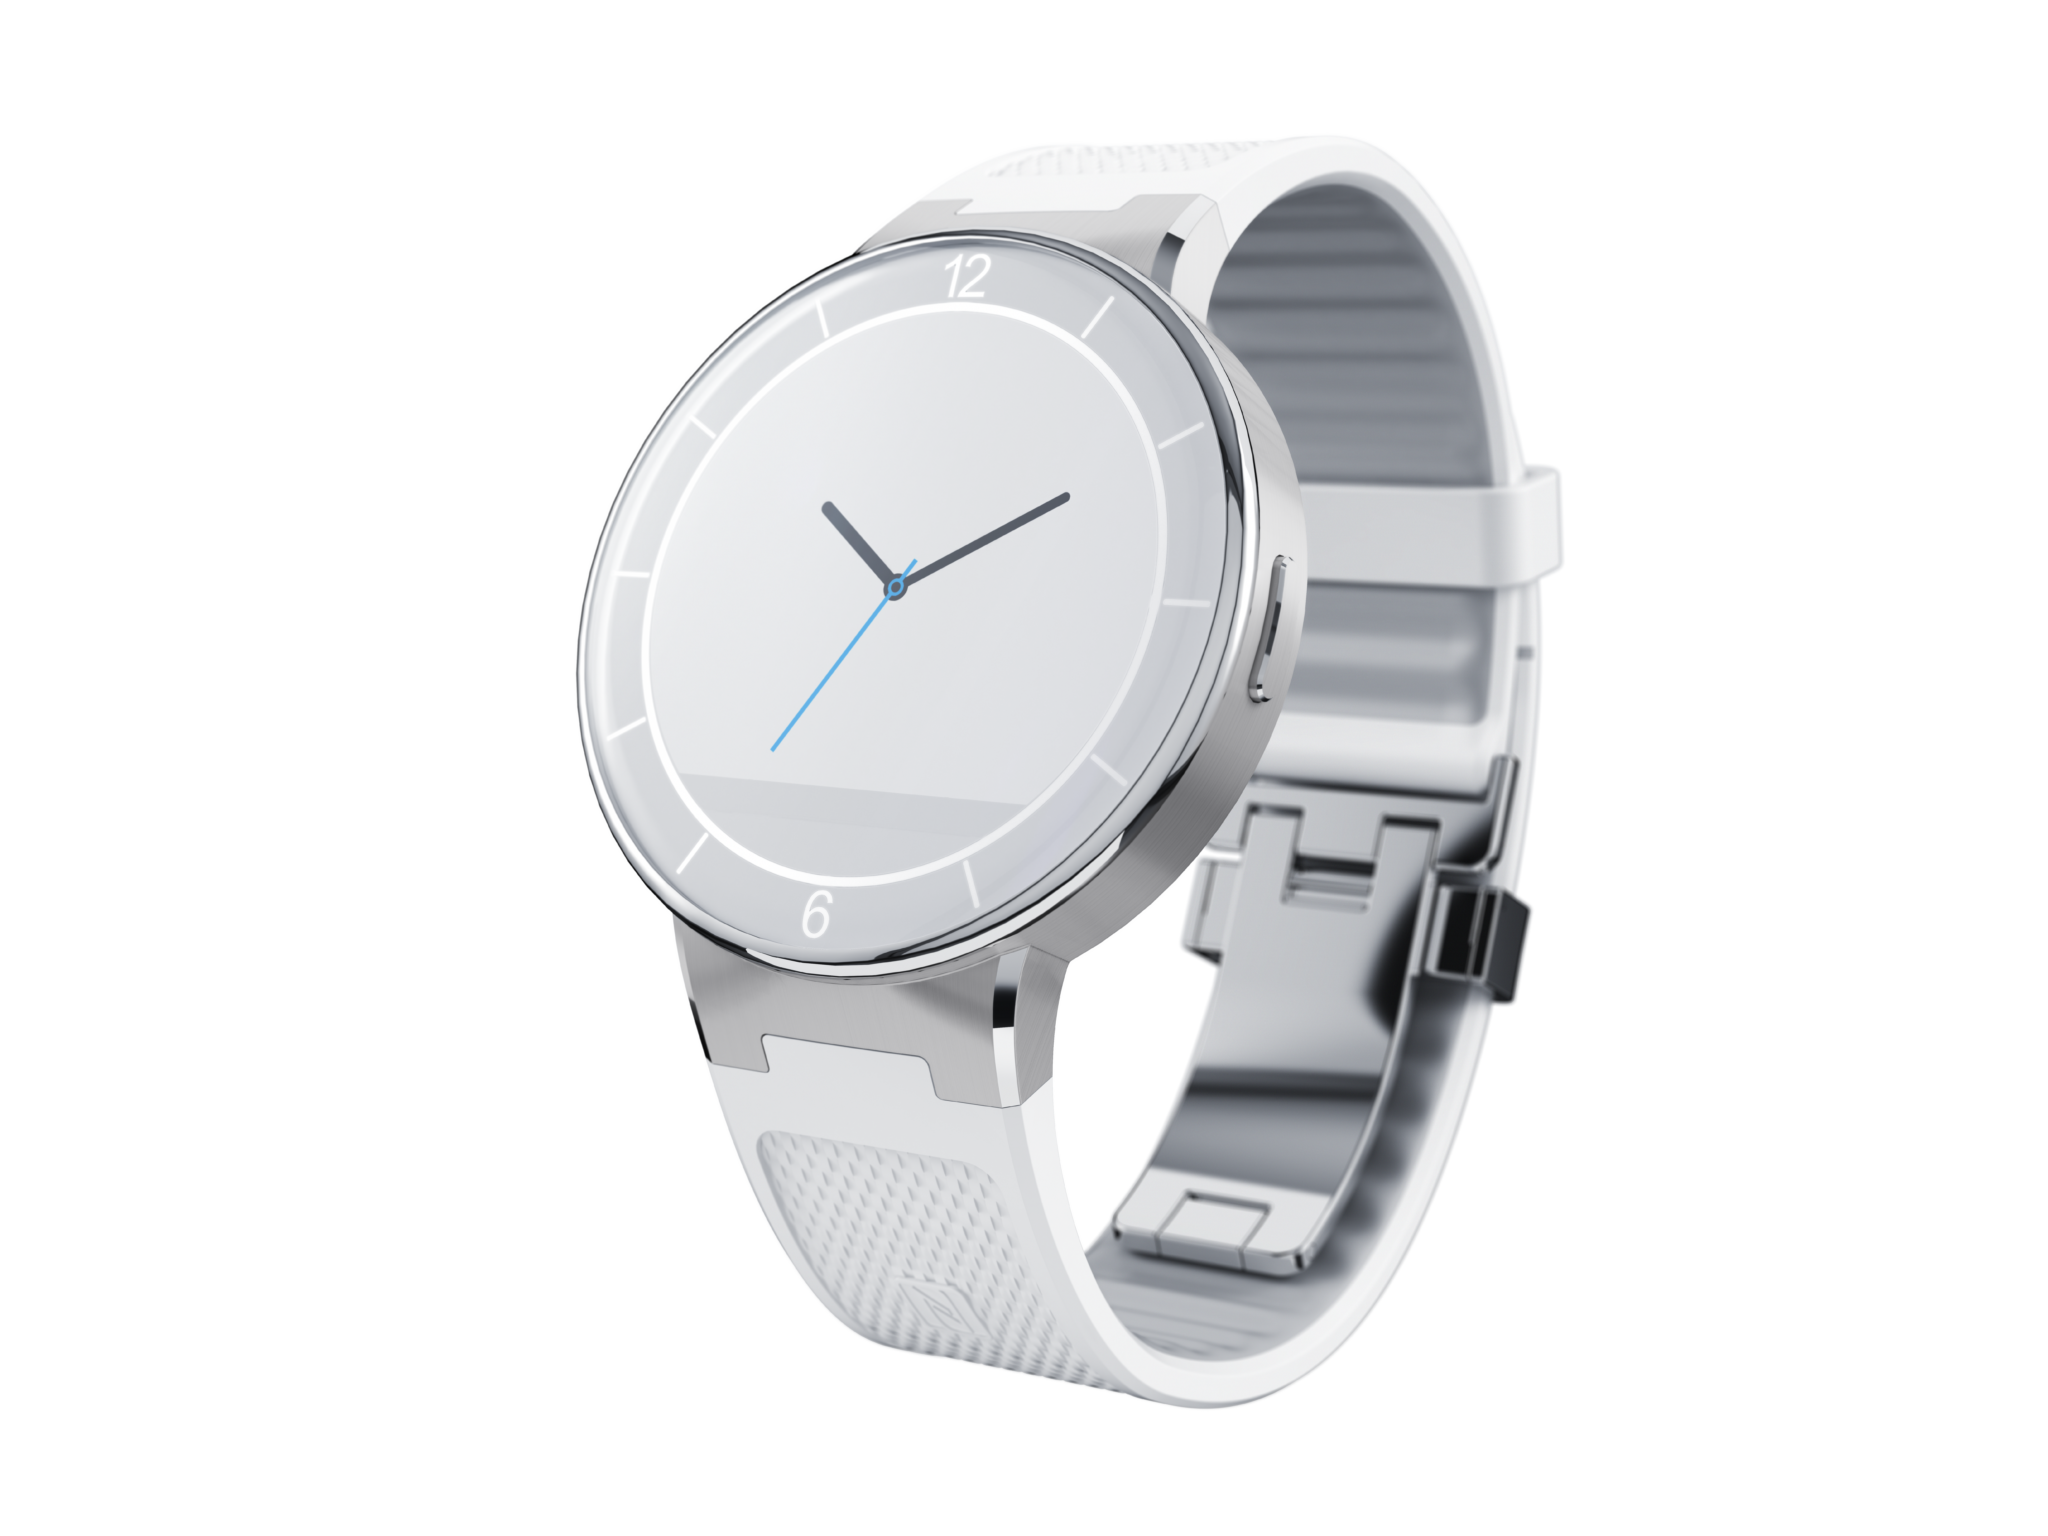 Alcatel one touch watch форум